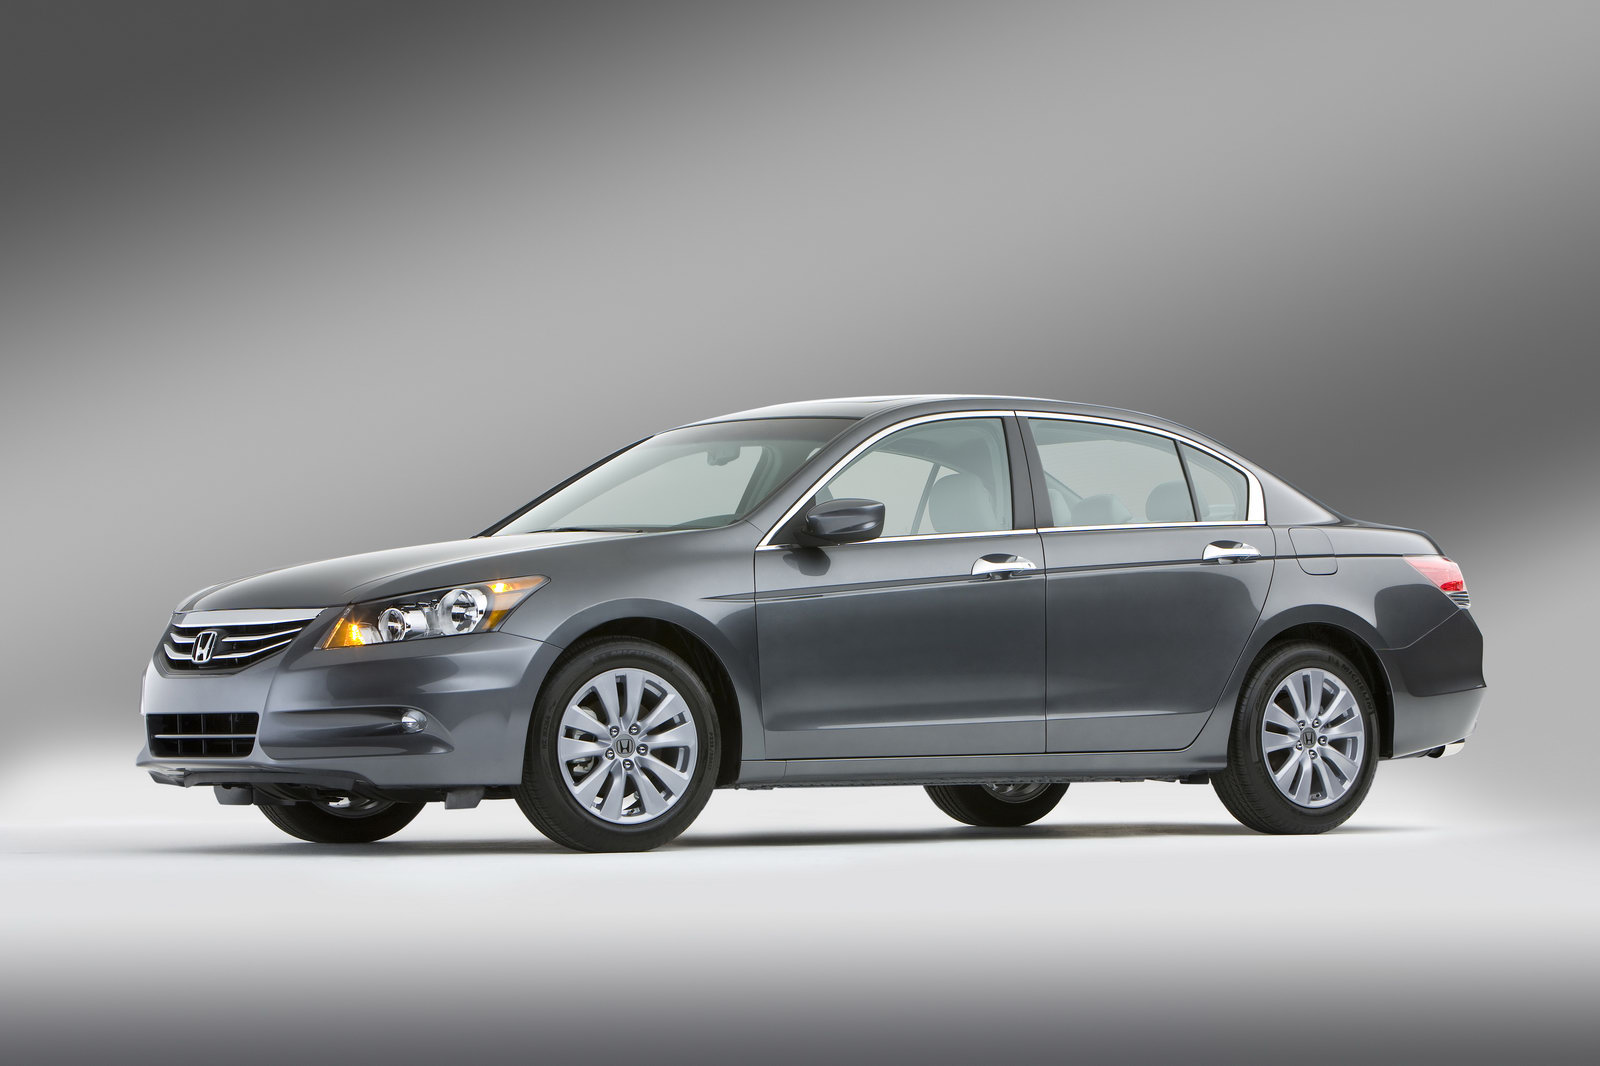 2011 Honda Accord #9